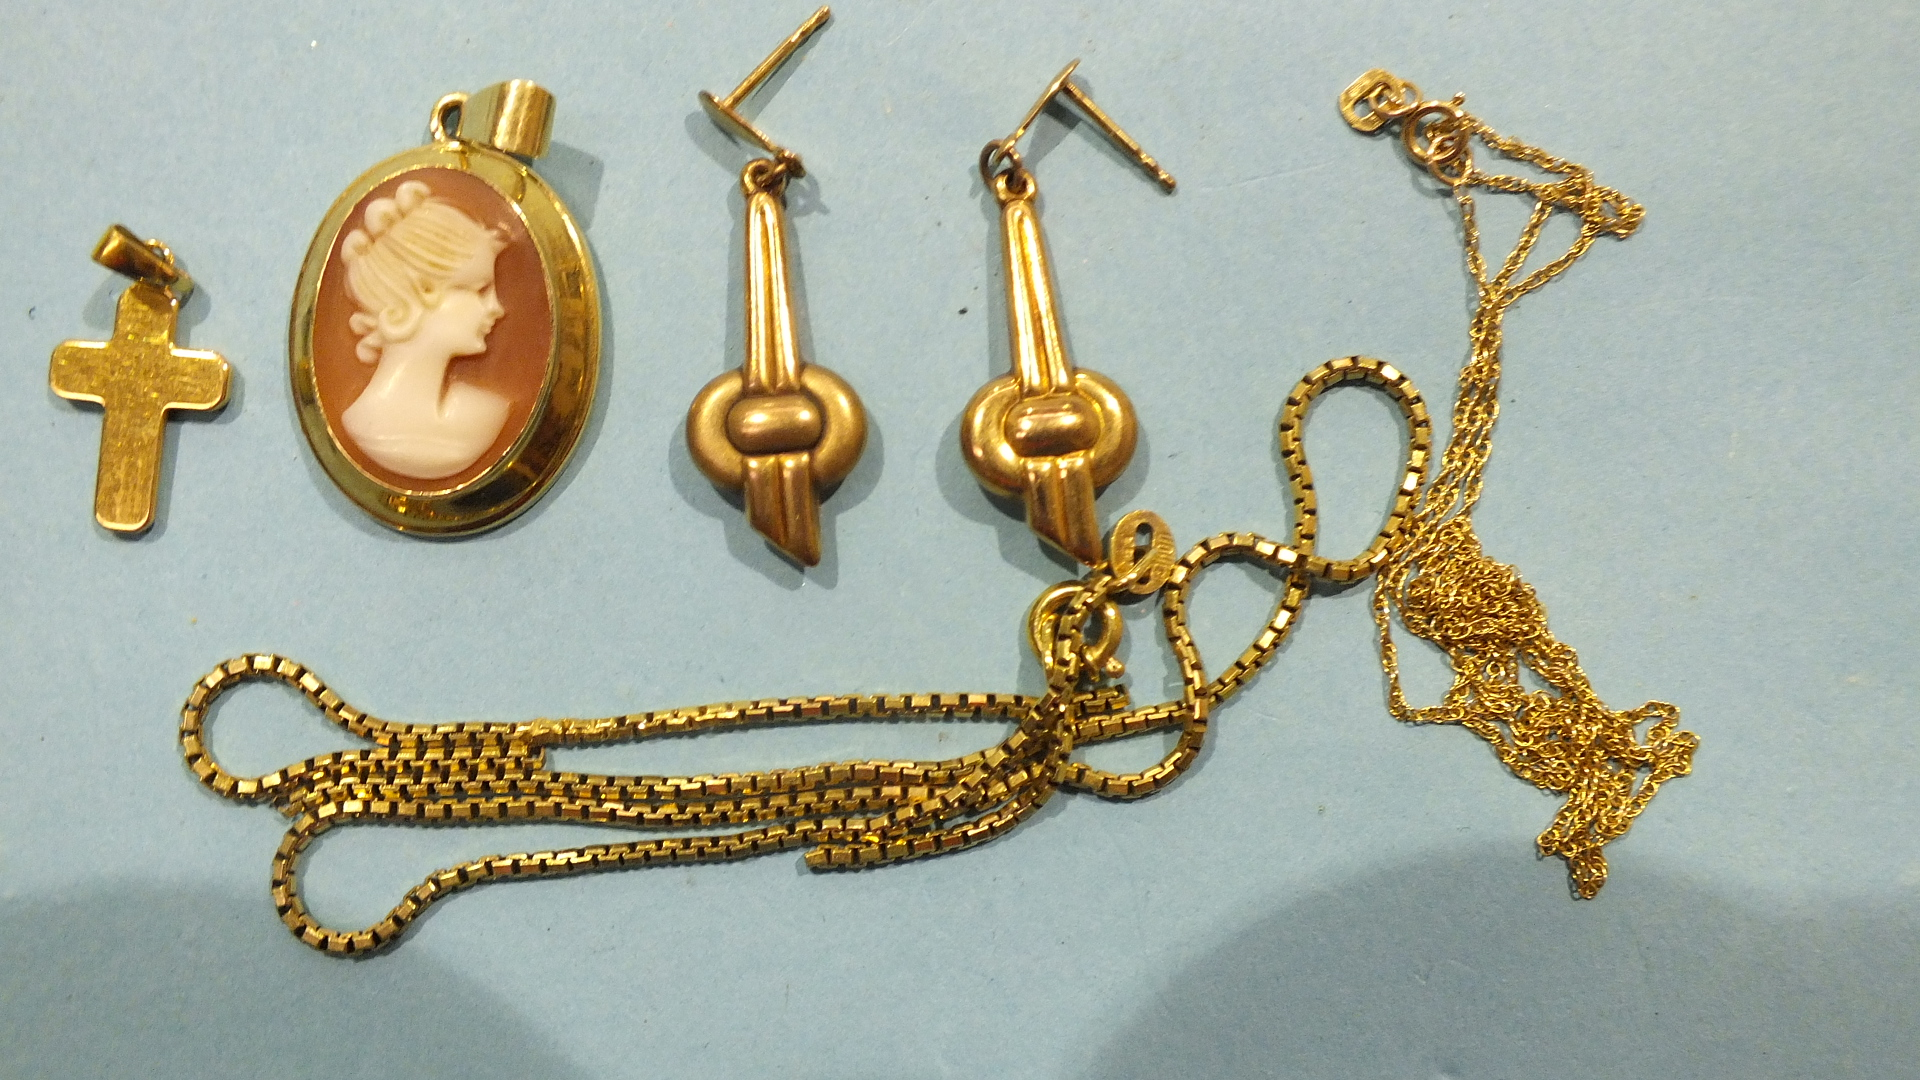 Lot 193 - A pair of earrings, a cross pendant and chain (af), all marked 333, 6.3g and a small 14ct gold